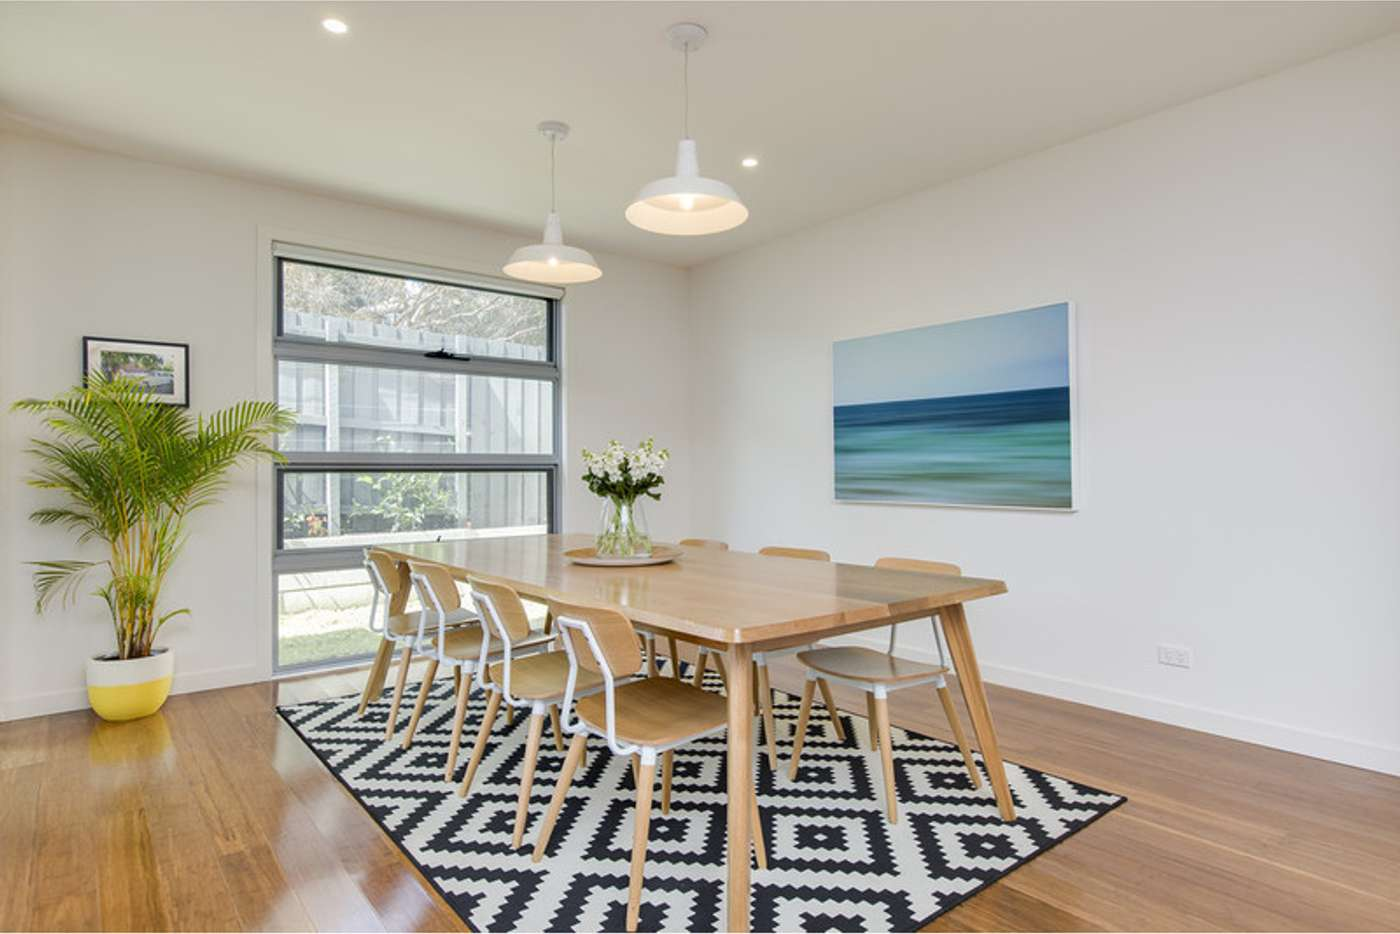 Sixth view of Homely townhouse listing, 11 Karella Crescent, Mornington VIC 3931